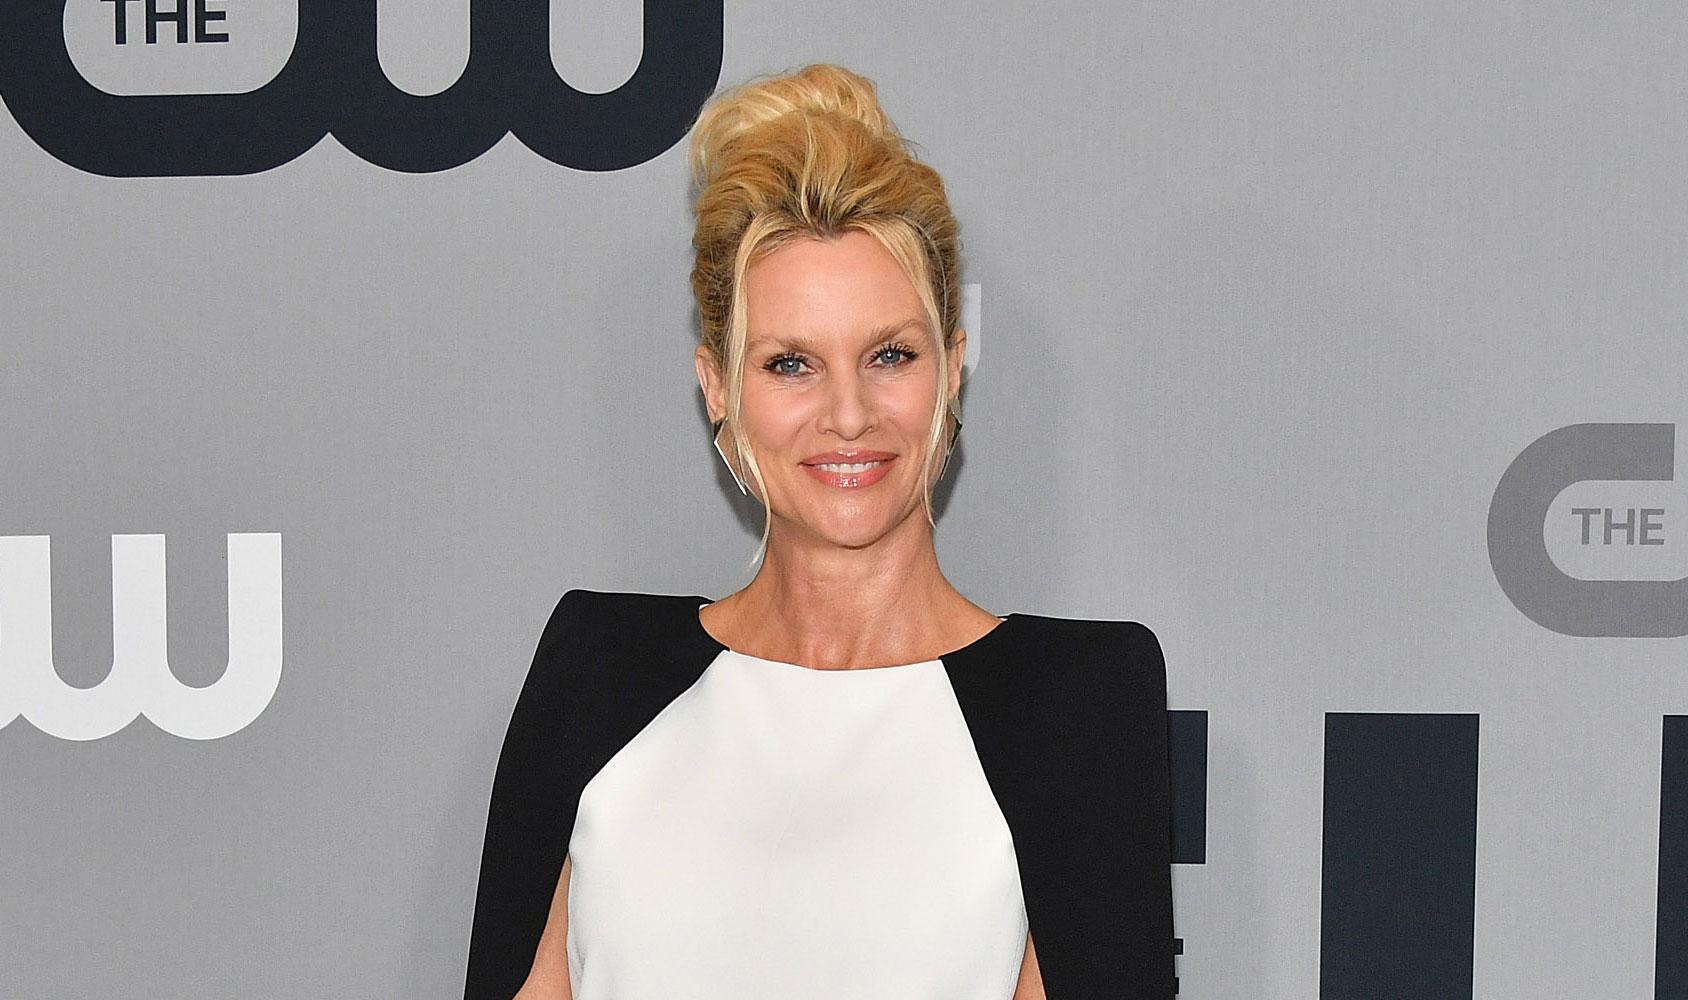 Nicollette Sheridan: What's in My Bag? - Nicollette Sheridan attends the 2018 CW Network Upfront at The London Hotel on May 17, 2018 in New York City.